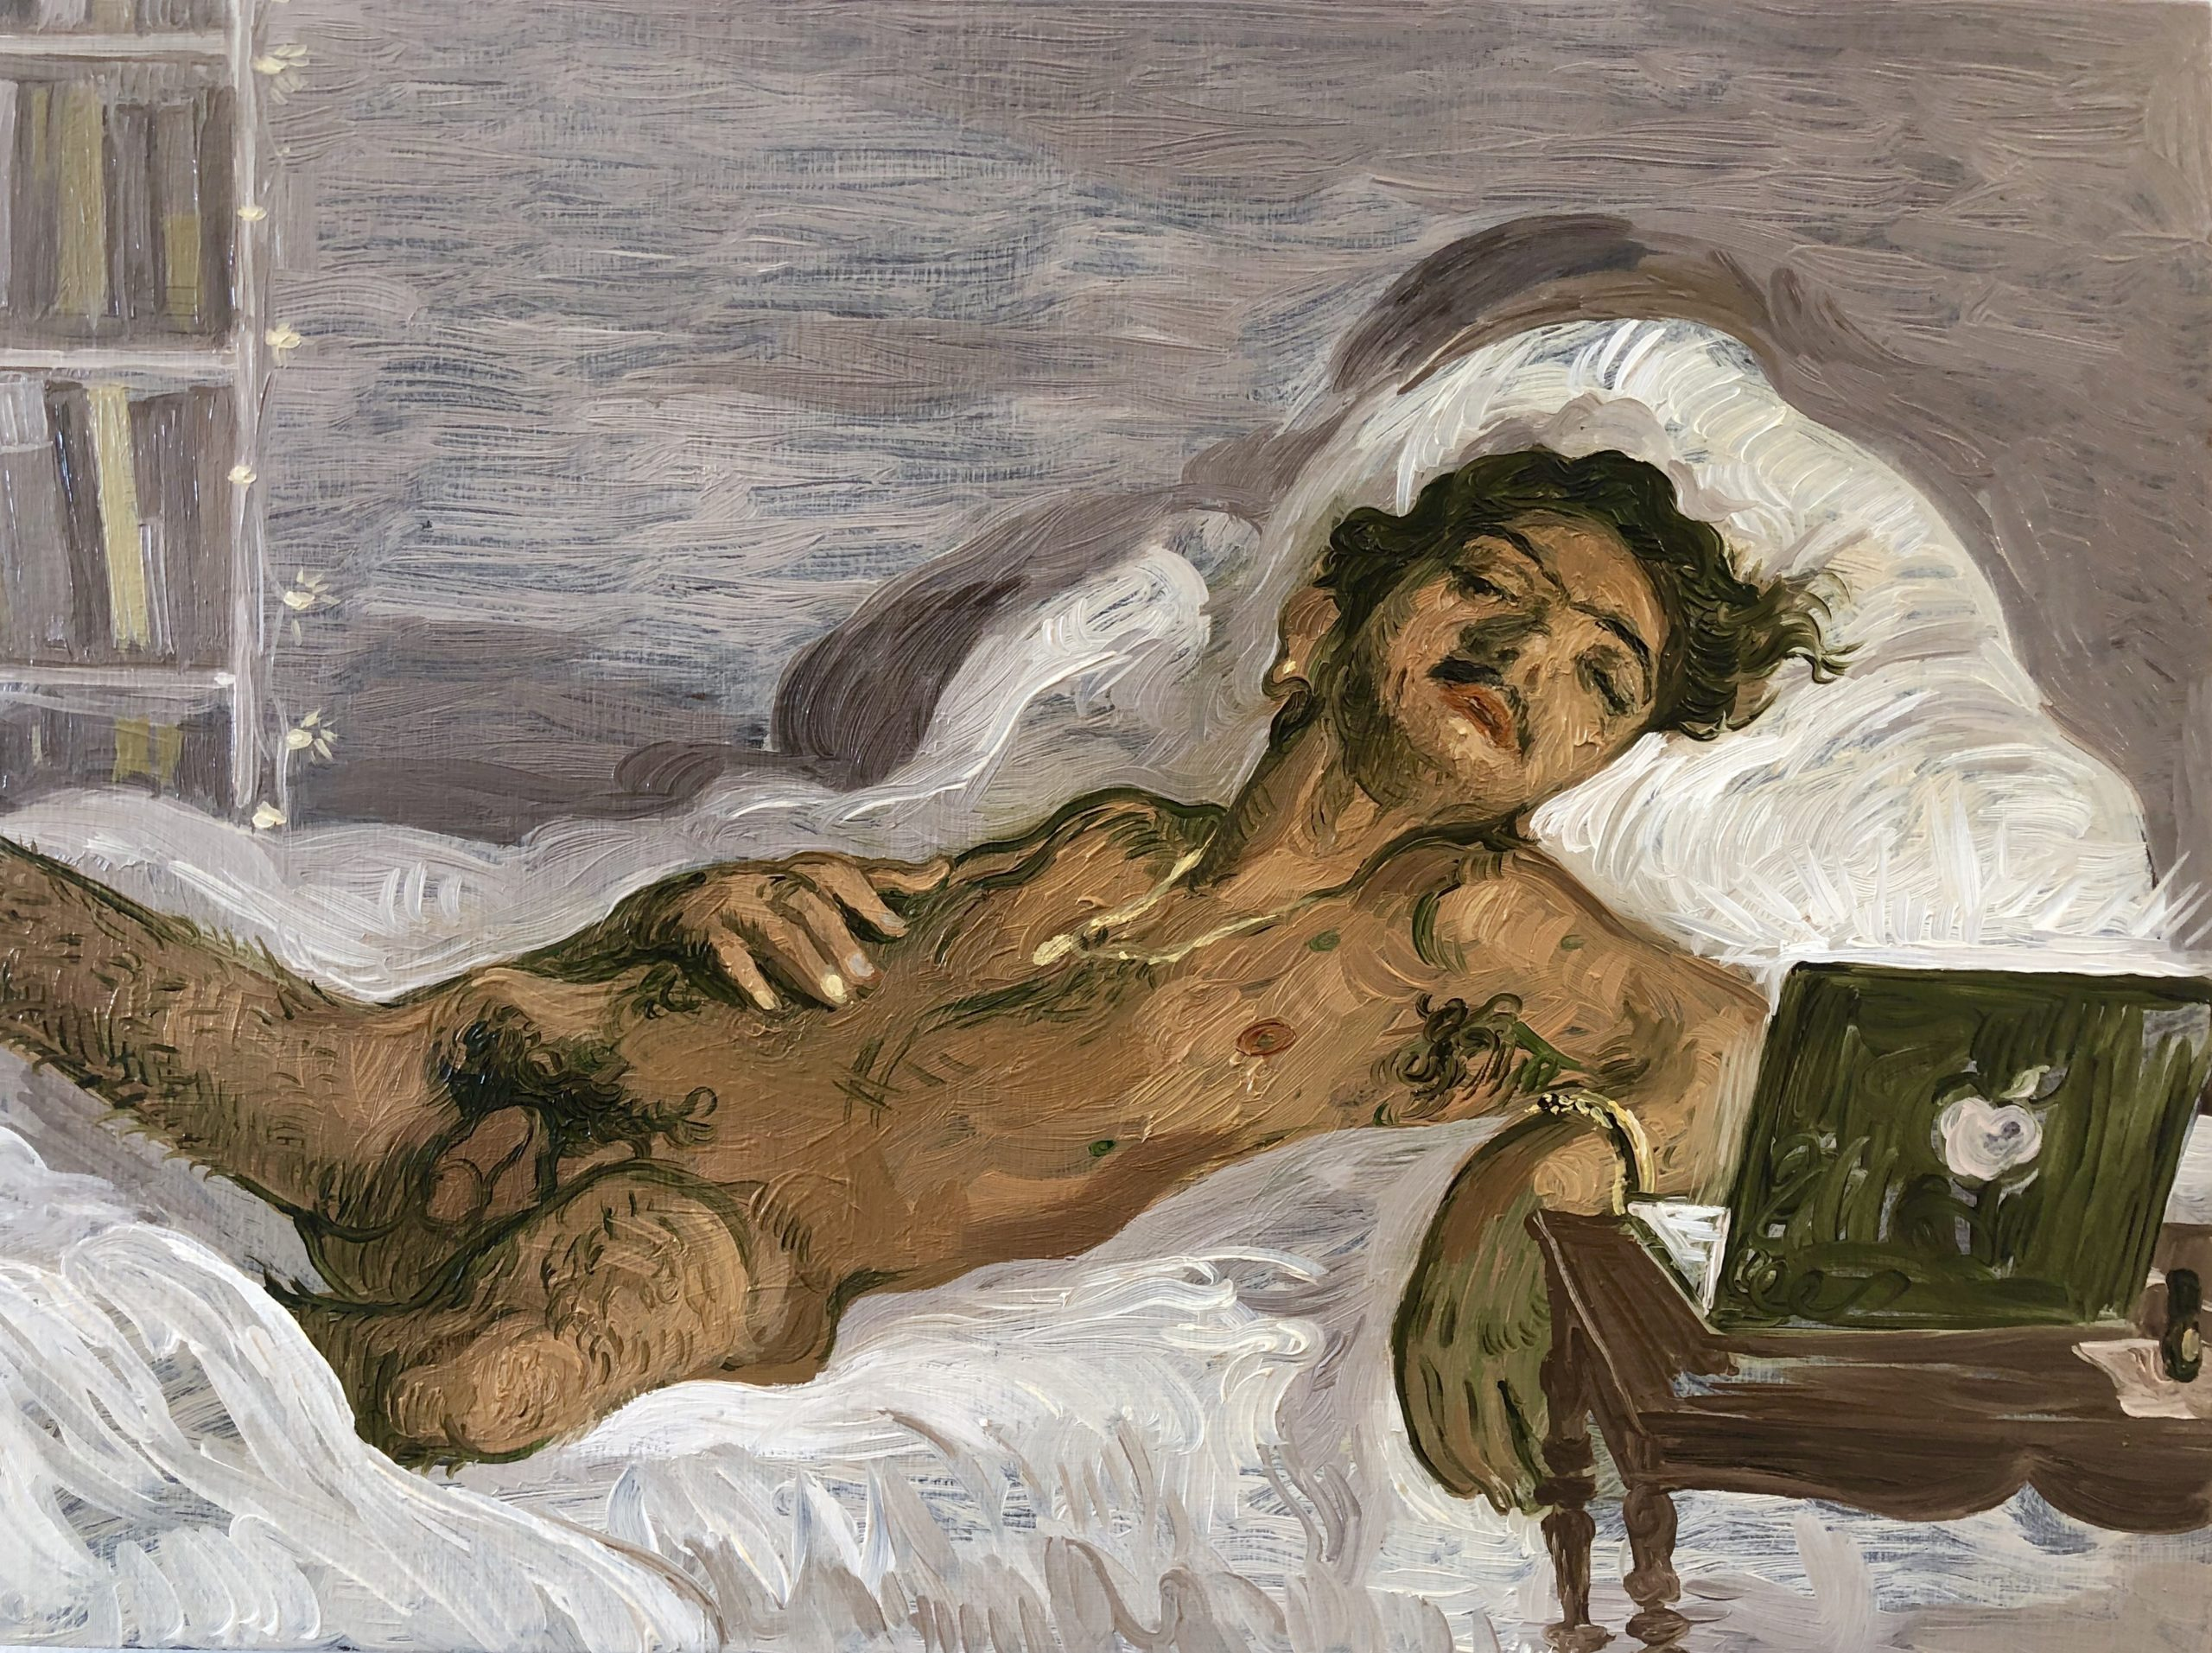 Salman Toor, Sleeping Boy